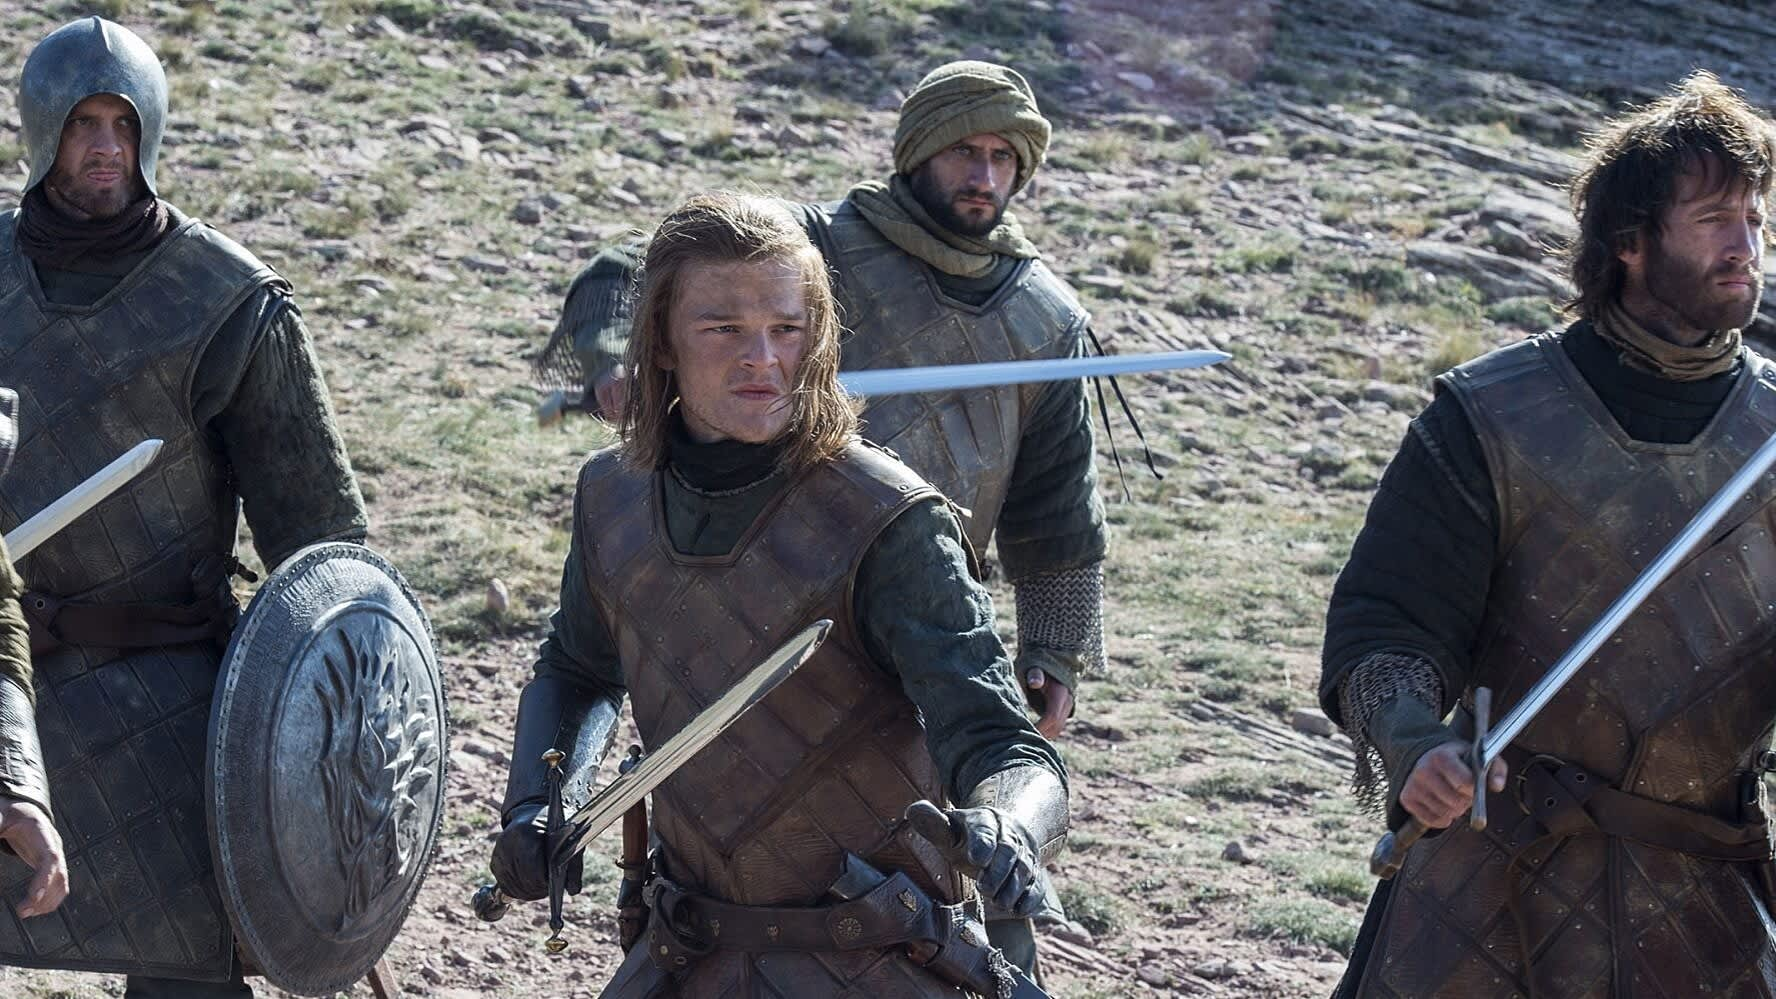 WarnerMedia plans to charge $9.99 per month for ad-supported HBO Max